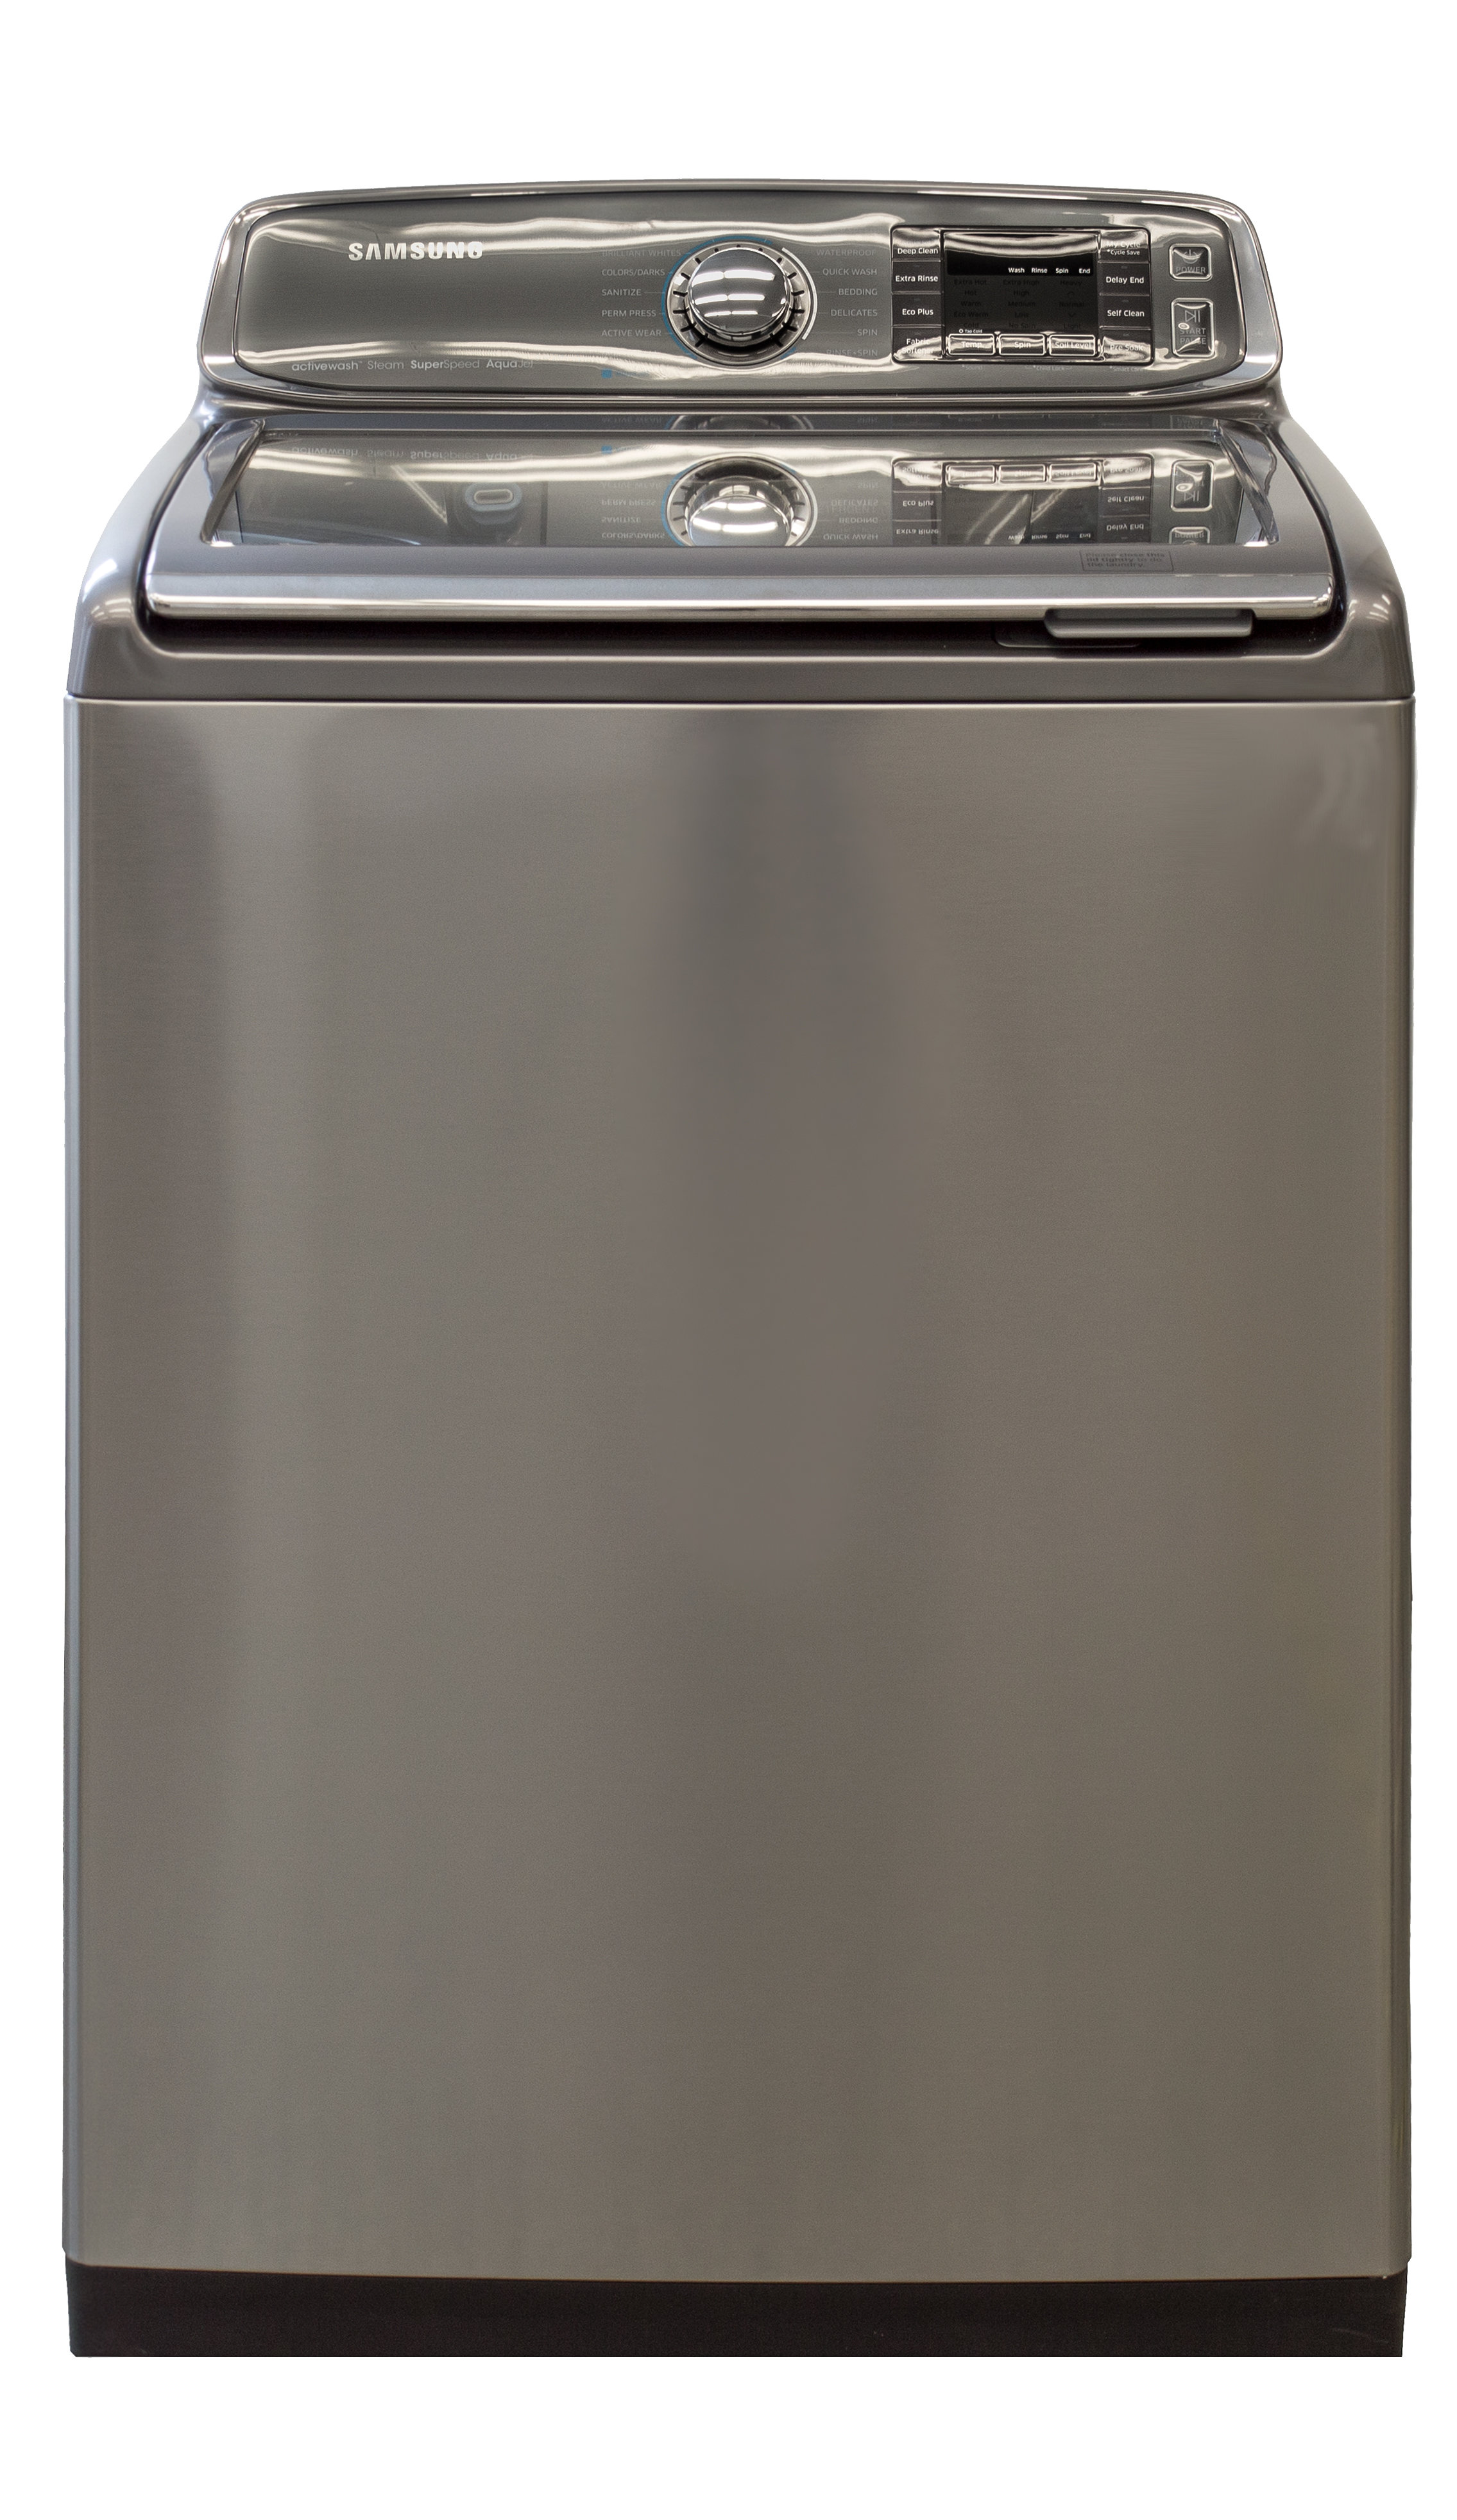 The best top load washer and dryer combo 2015 - The Samsung Wa52j8700ap Looks Like Very Other Samsung Top Loader